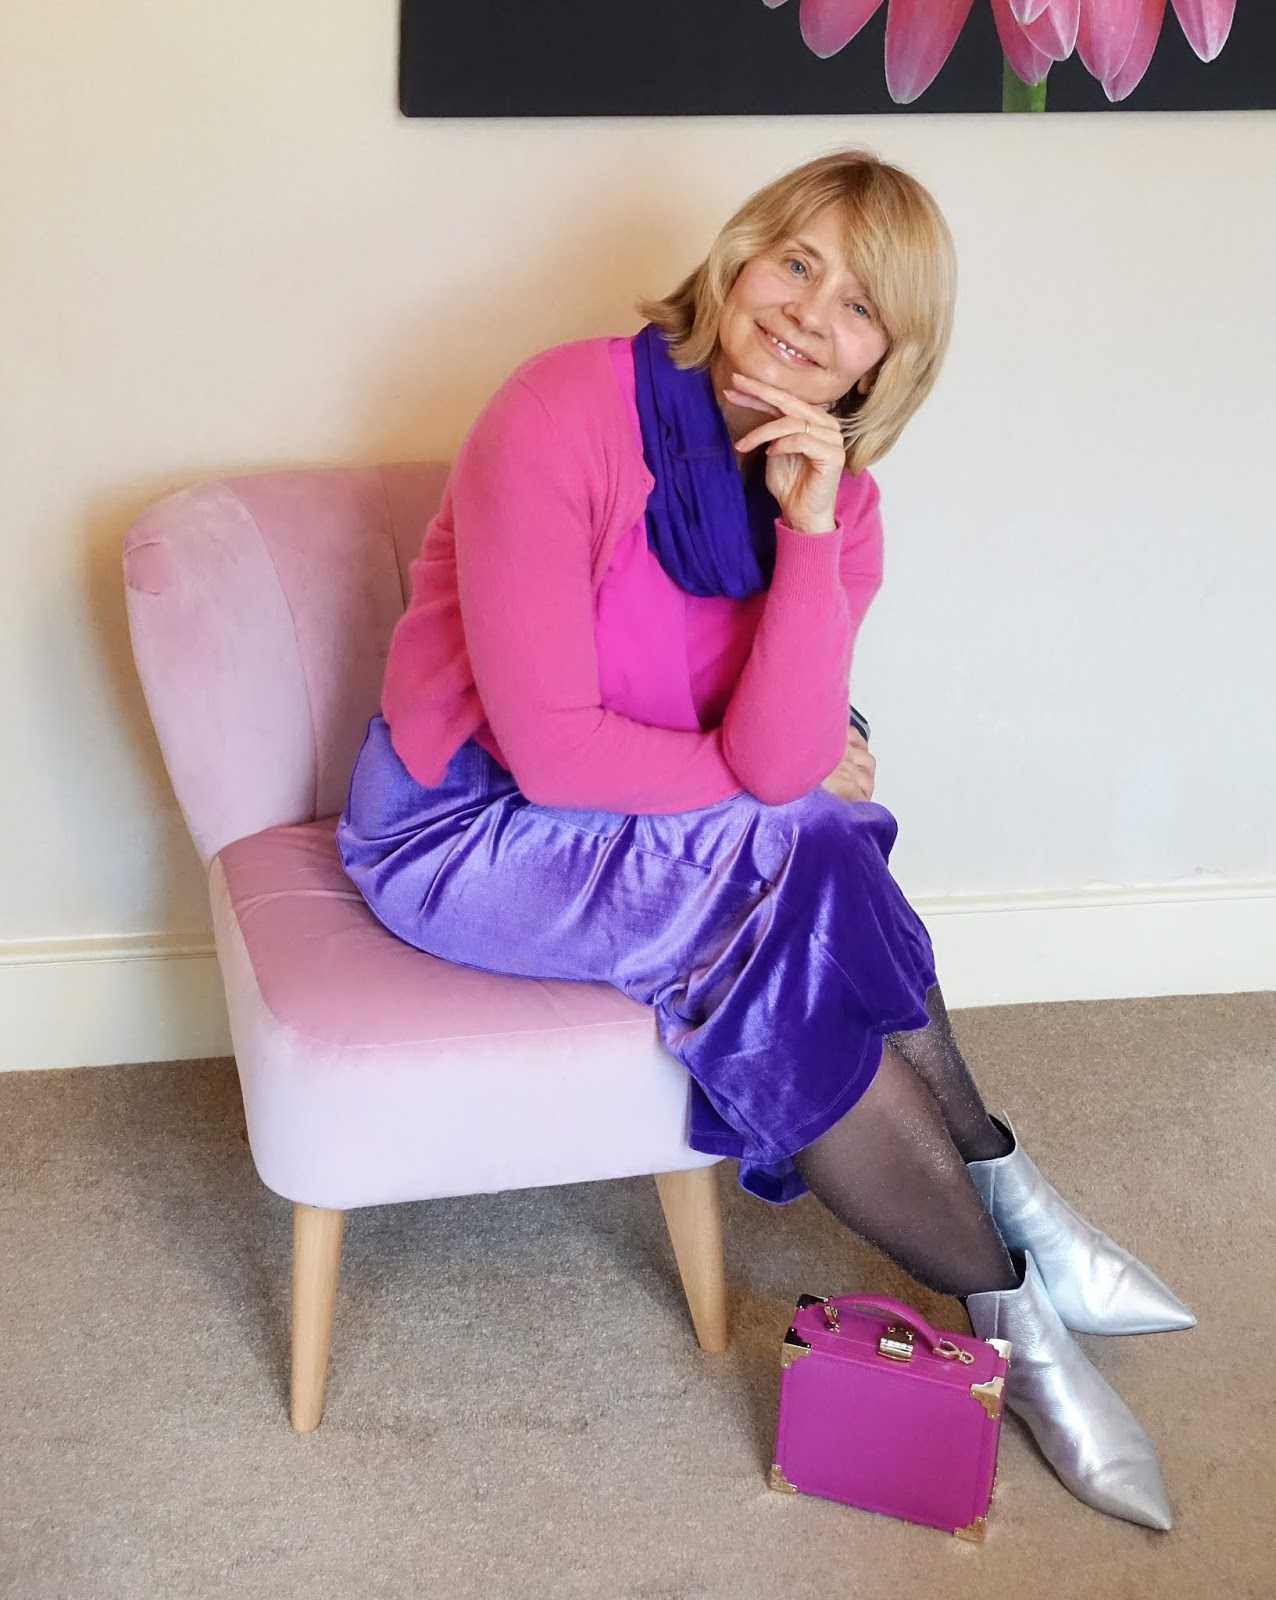 A glamorous velvet skirt in violet with a bright fuchsia top and purple